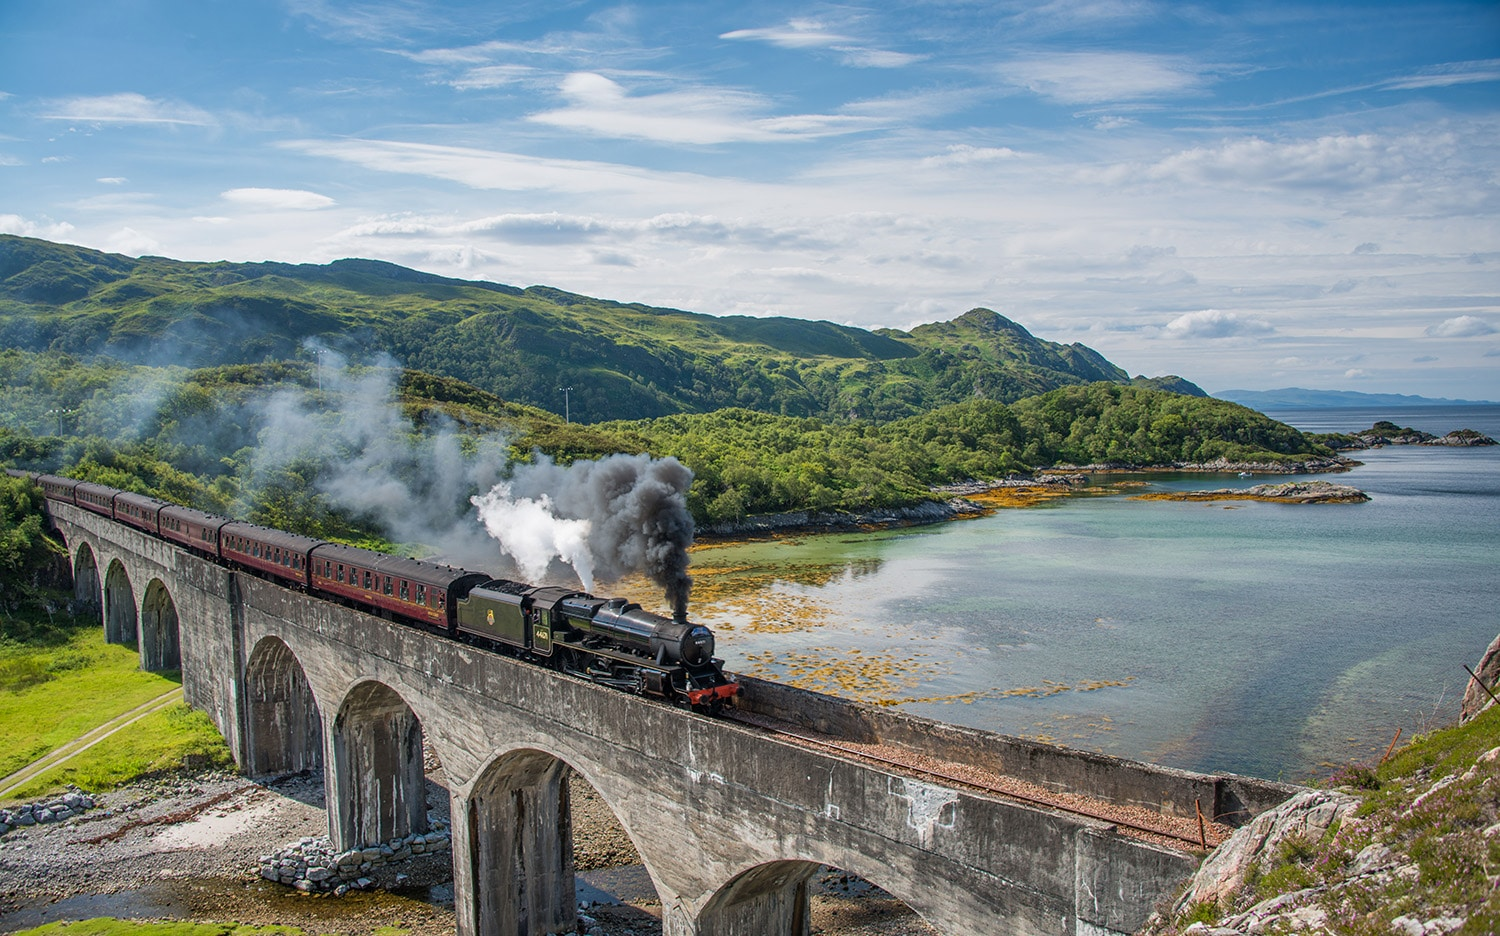 The Jocobite steam train, one of the many experiences on offer during a bespoke tour of Scotland